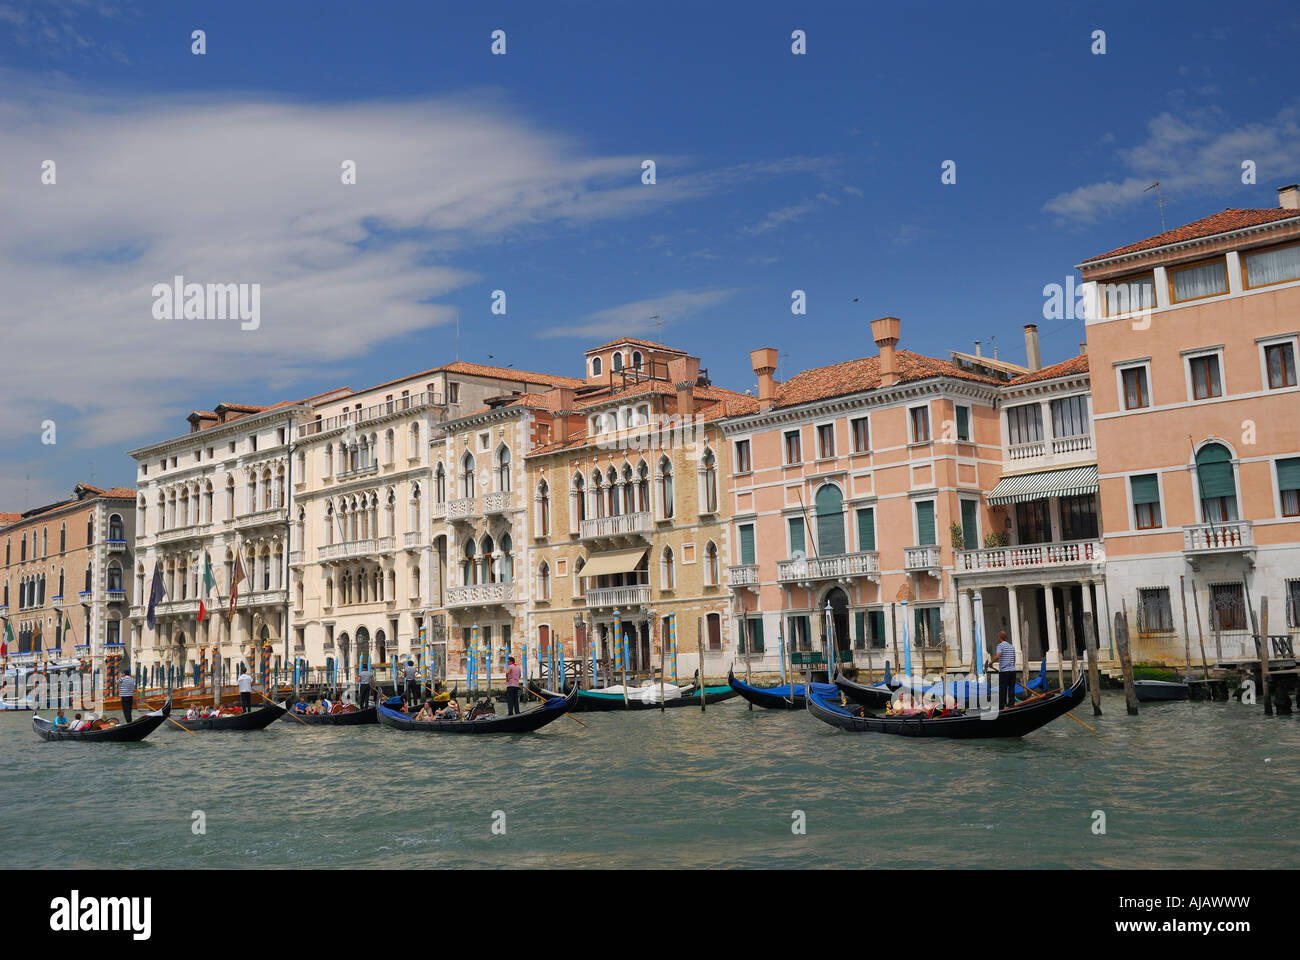 Row of stucco houses and gondoliers plying the Grand Canal in Venice Italy - Stock Image